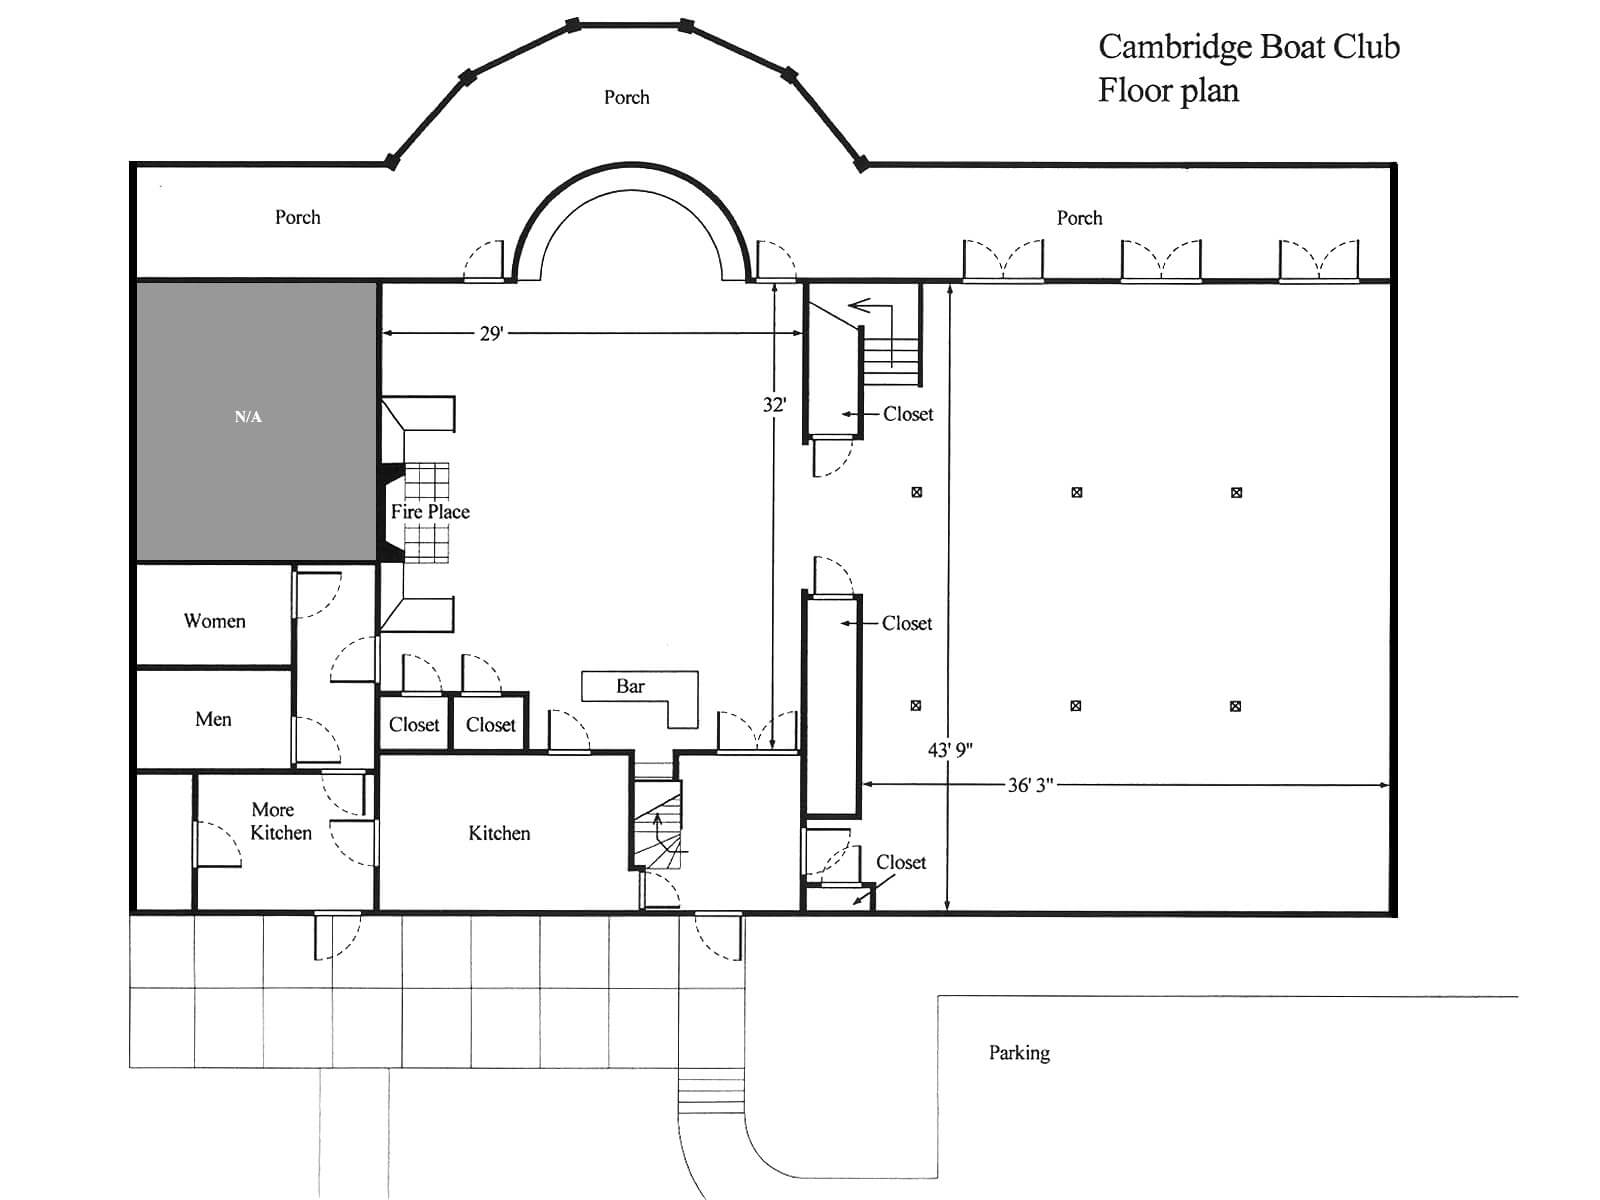 Floor plan of the cambridge boat club cambridge boat club for Floor plans with pictures